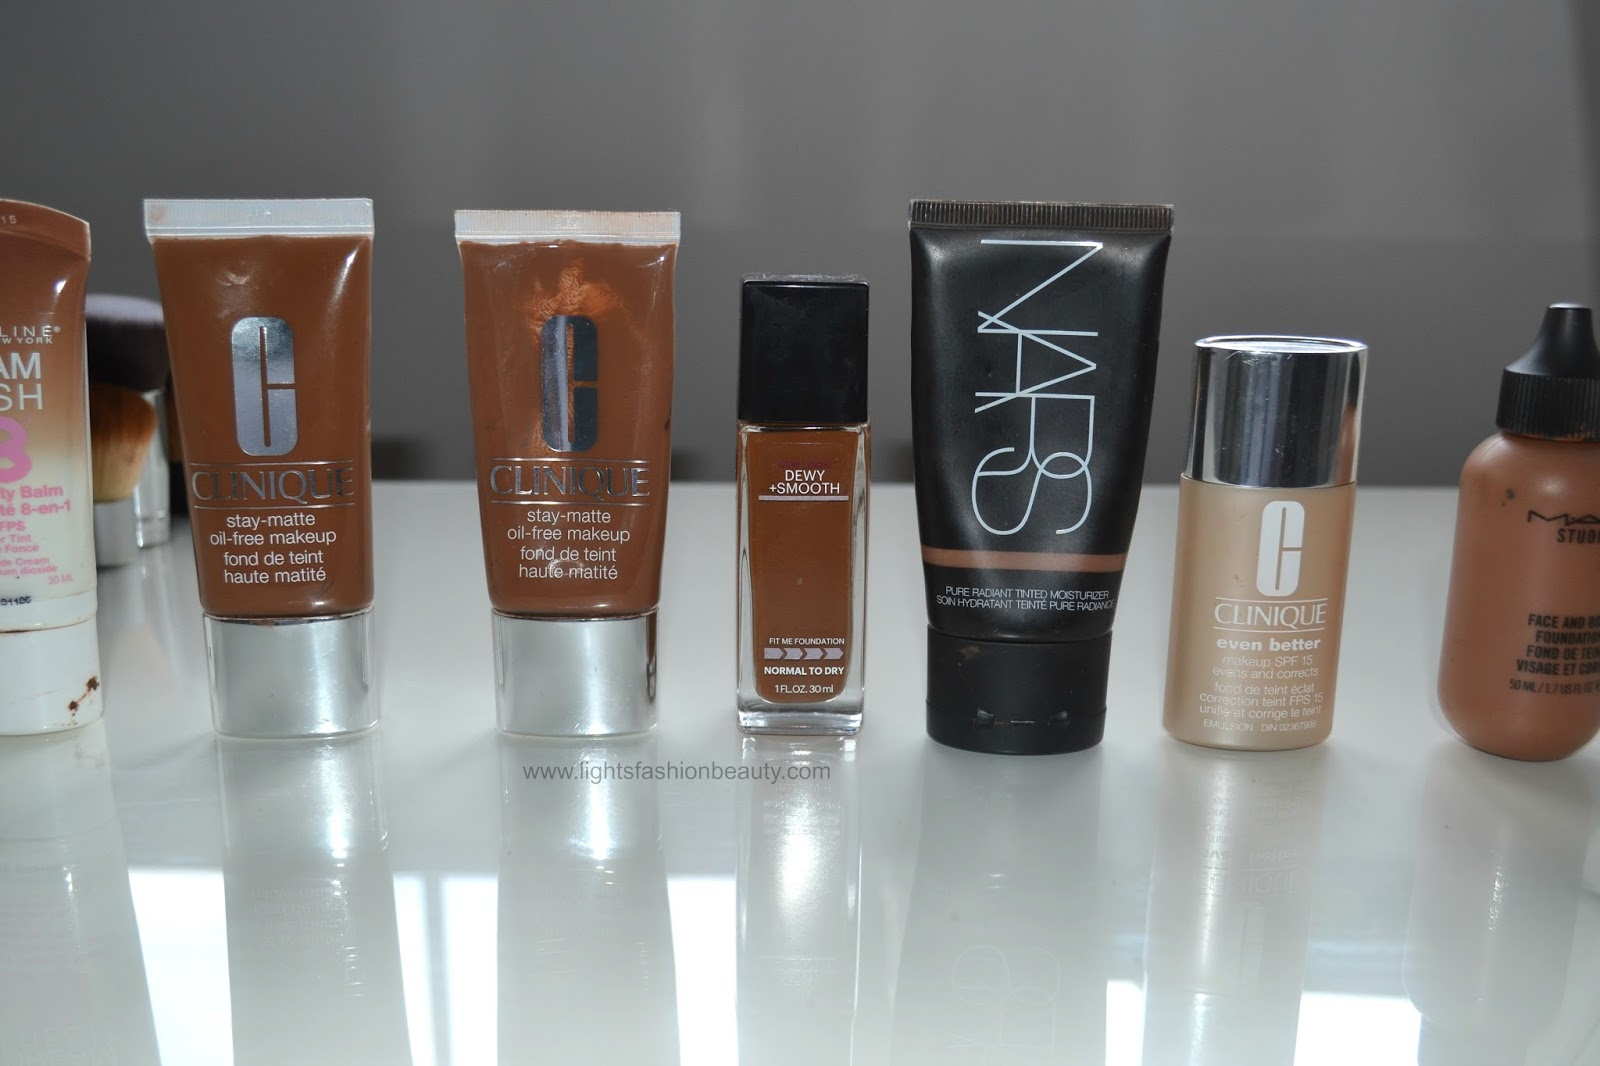 foundation collection, foundation for women of color, best foundation for oily skin, high end foundations, drugstore foundation, full coverage foundation